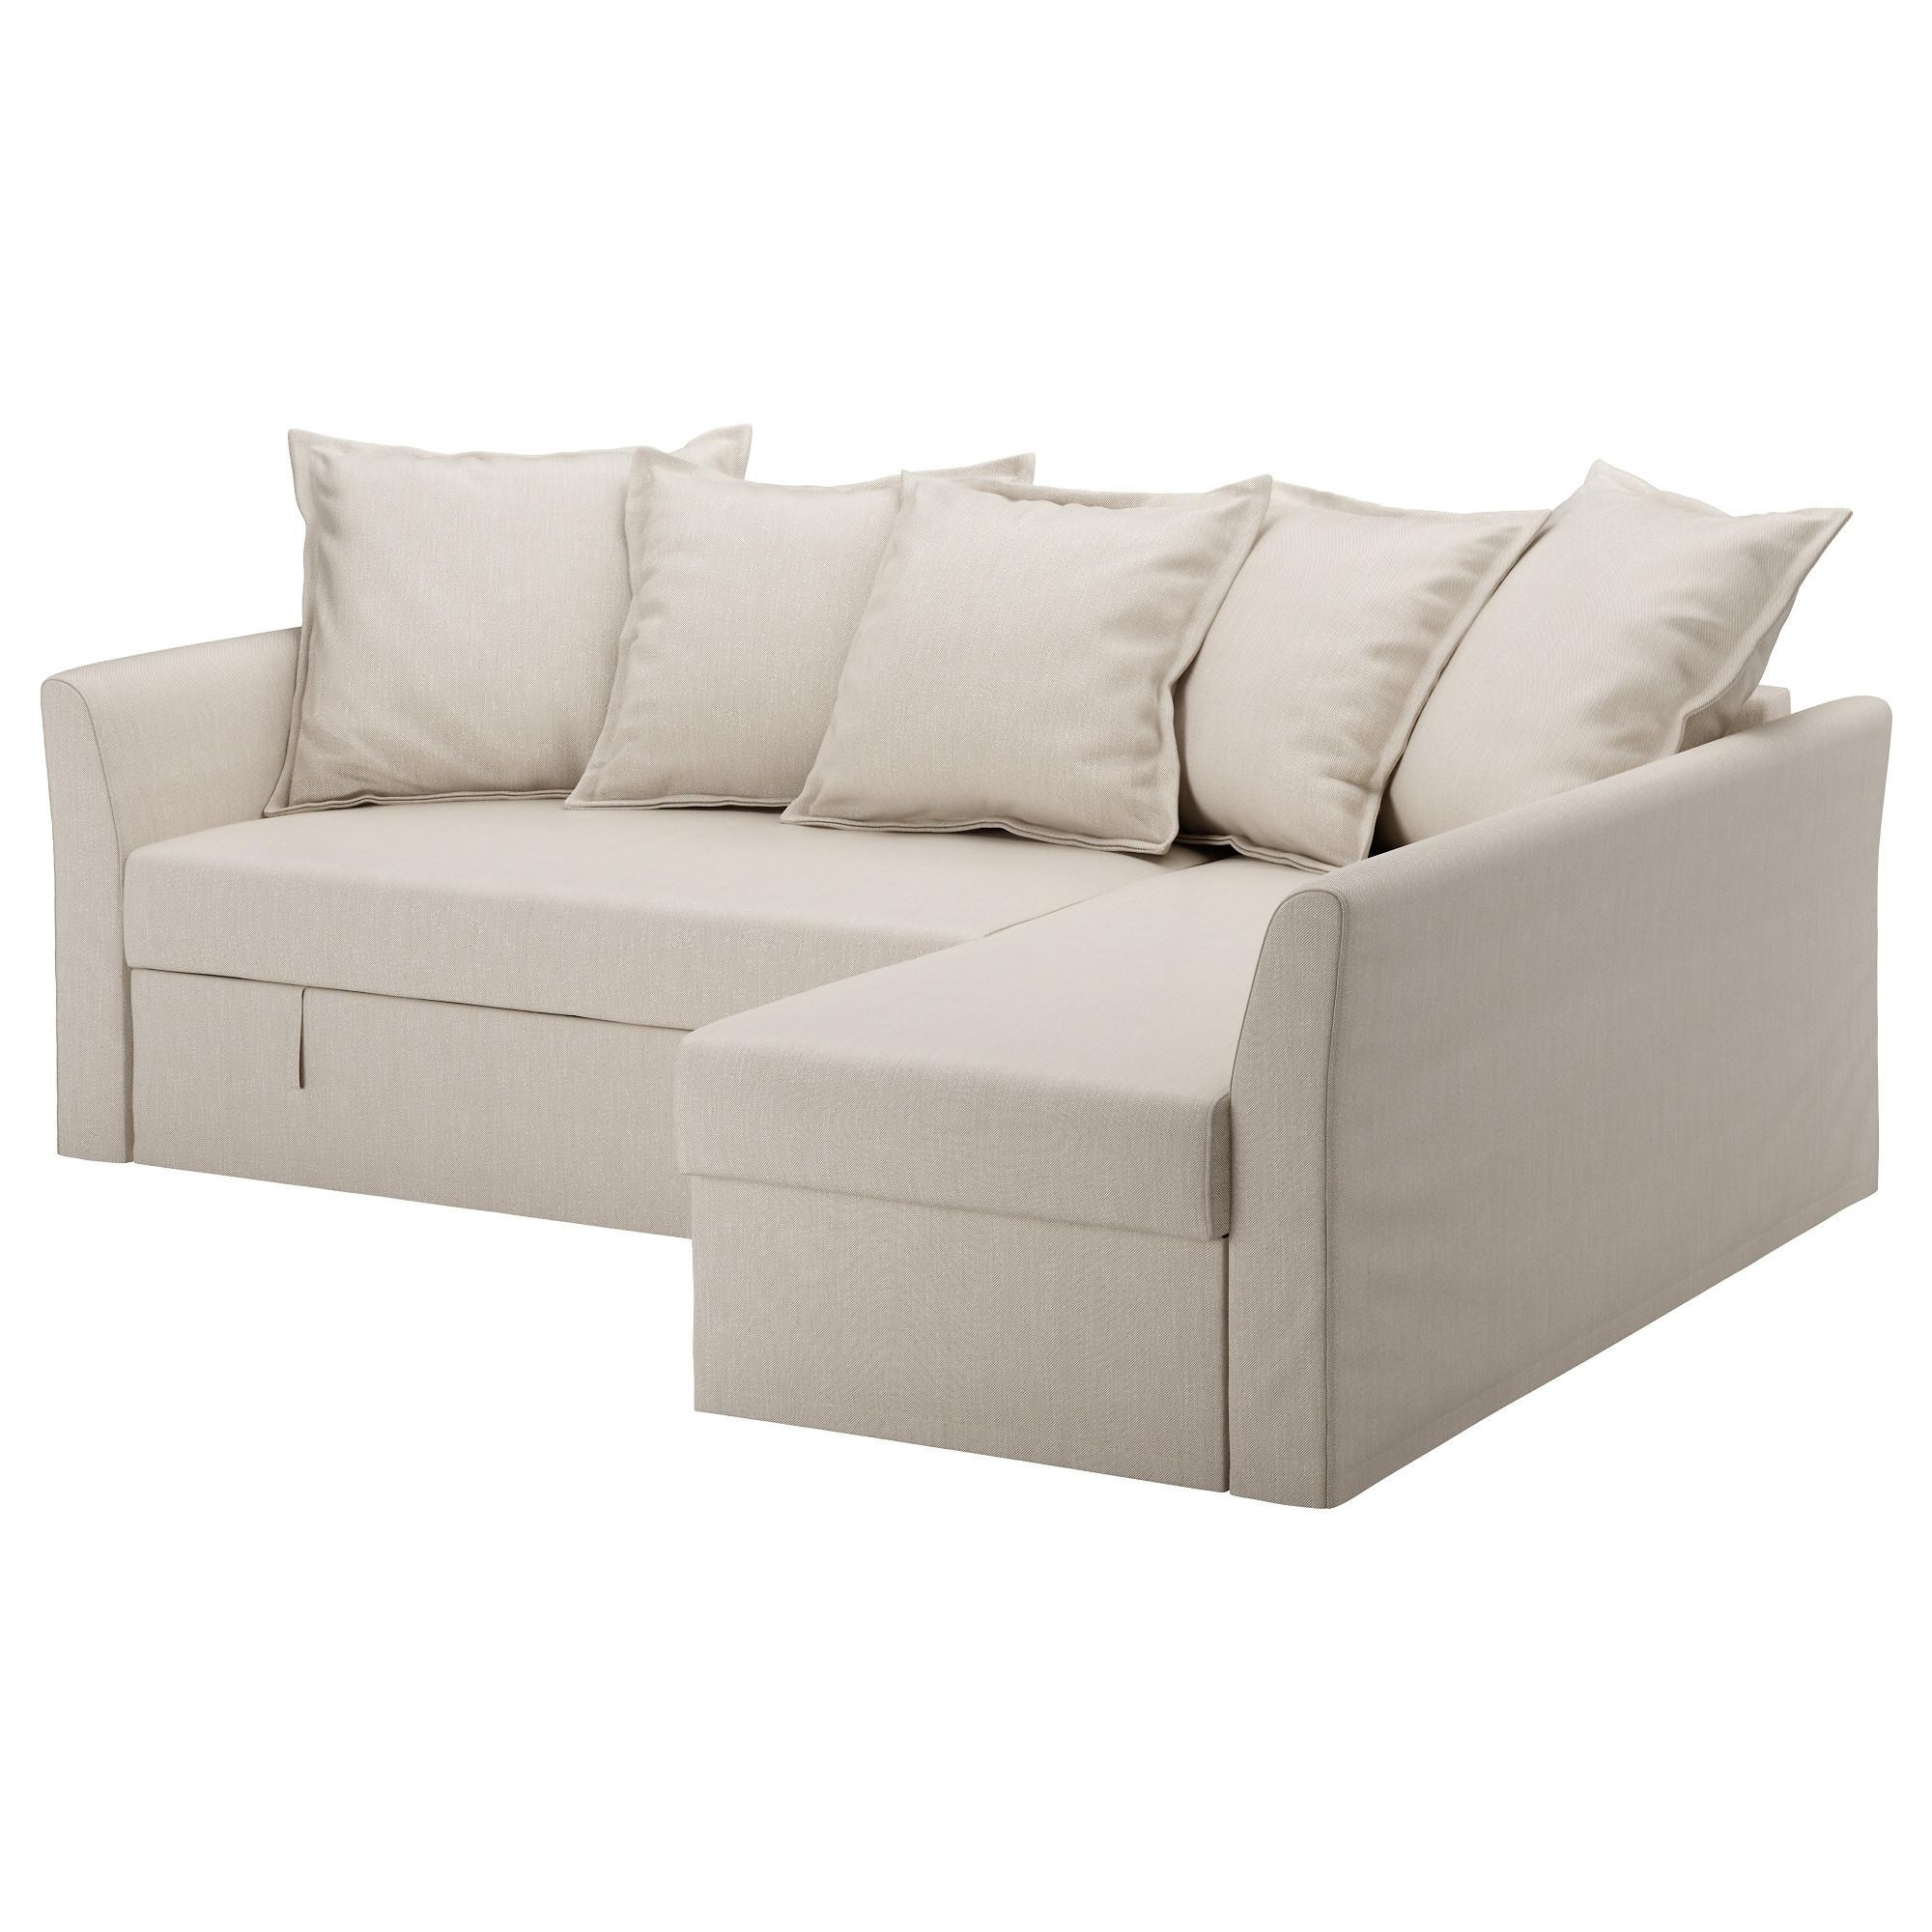 Holmsund Corner Sofa Bed Nordvalla Beige – Ikea Pertaining To Corner Sofa Beds (Image 13 of 20)